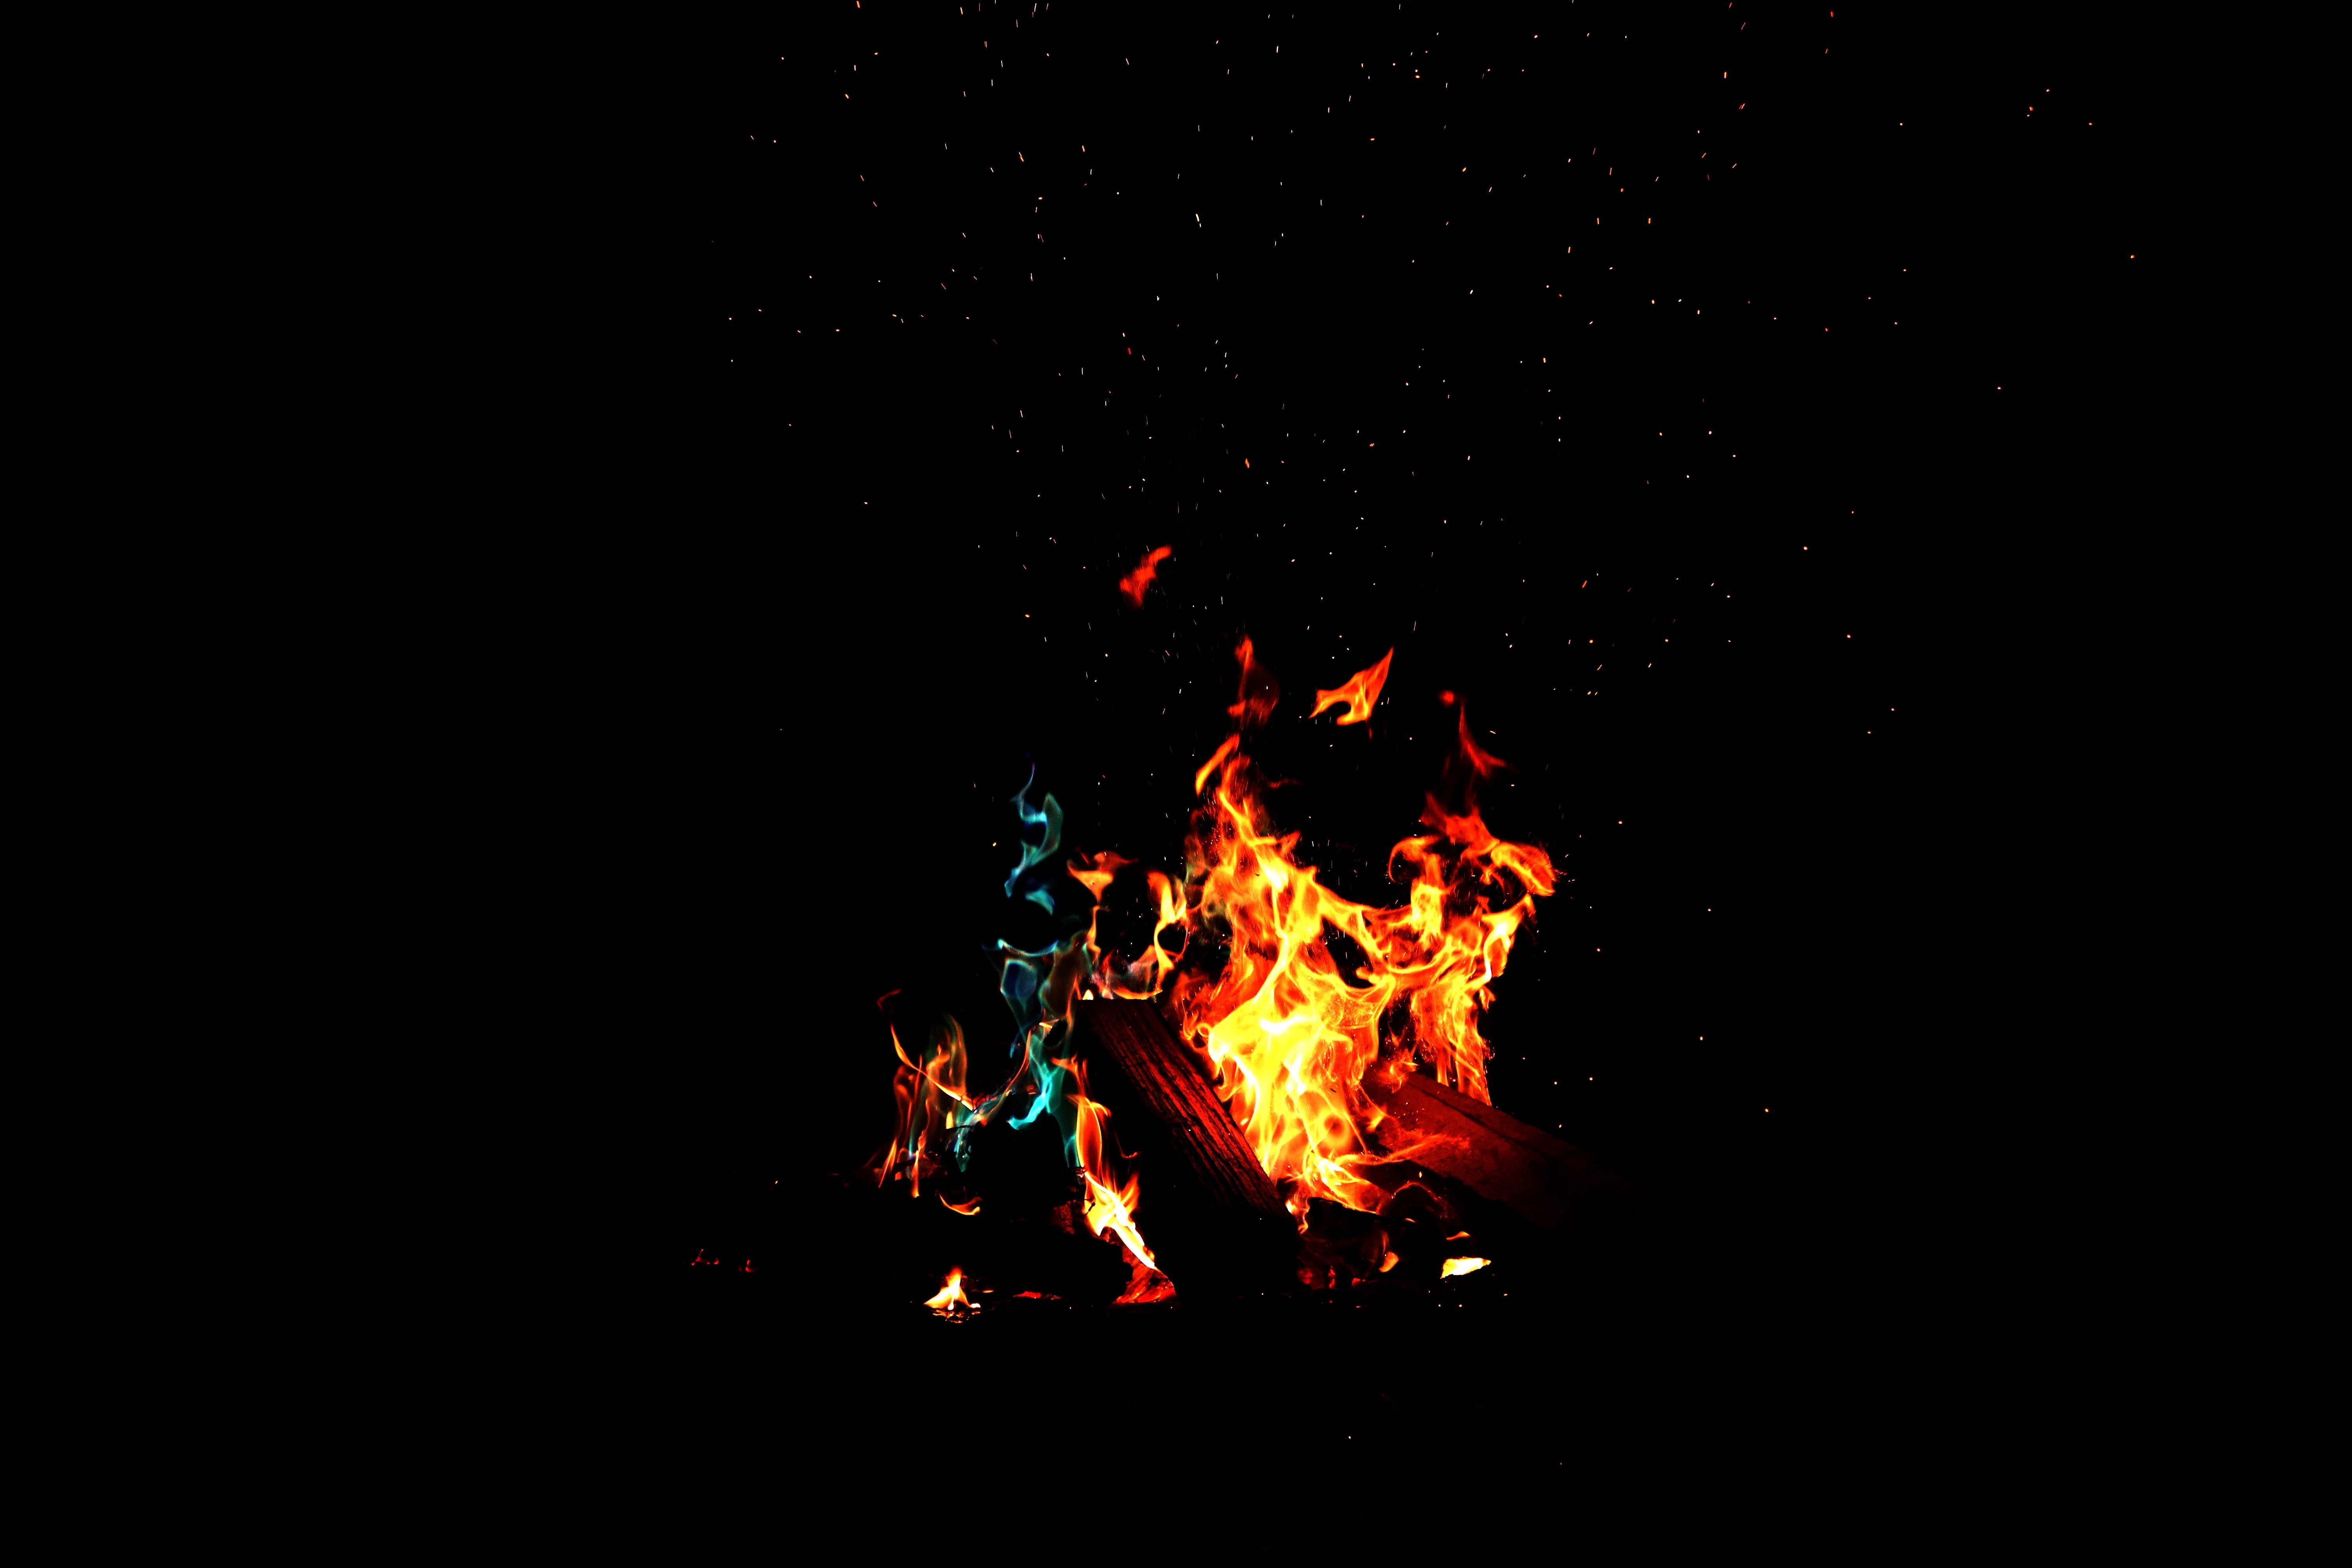 fire wallpapers 4k for your phone and desktop screen